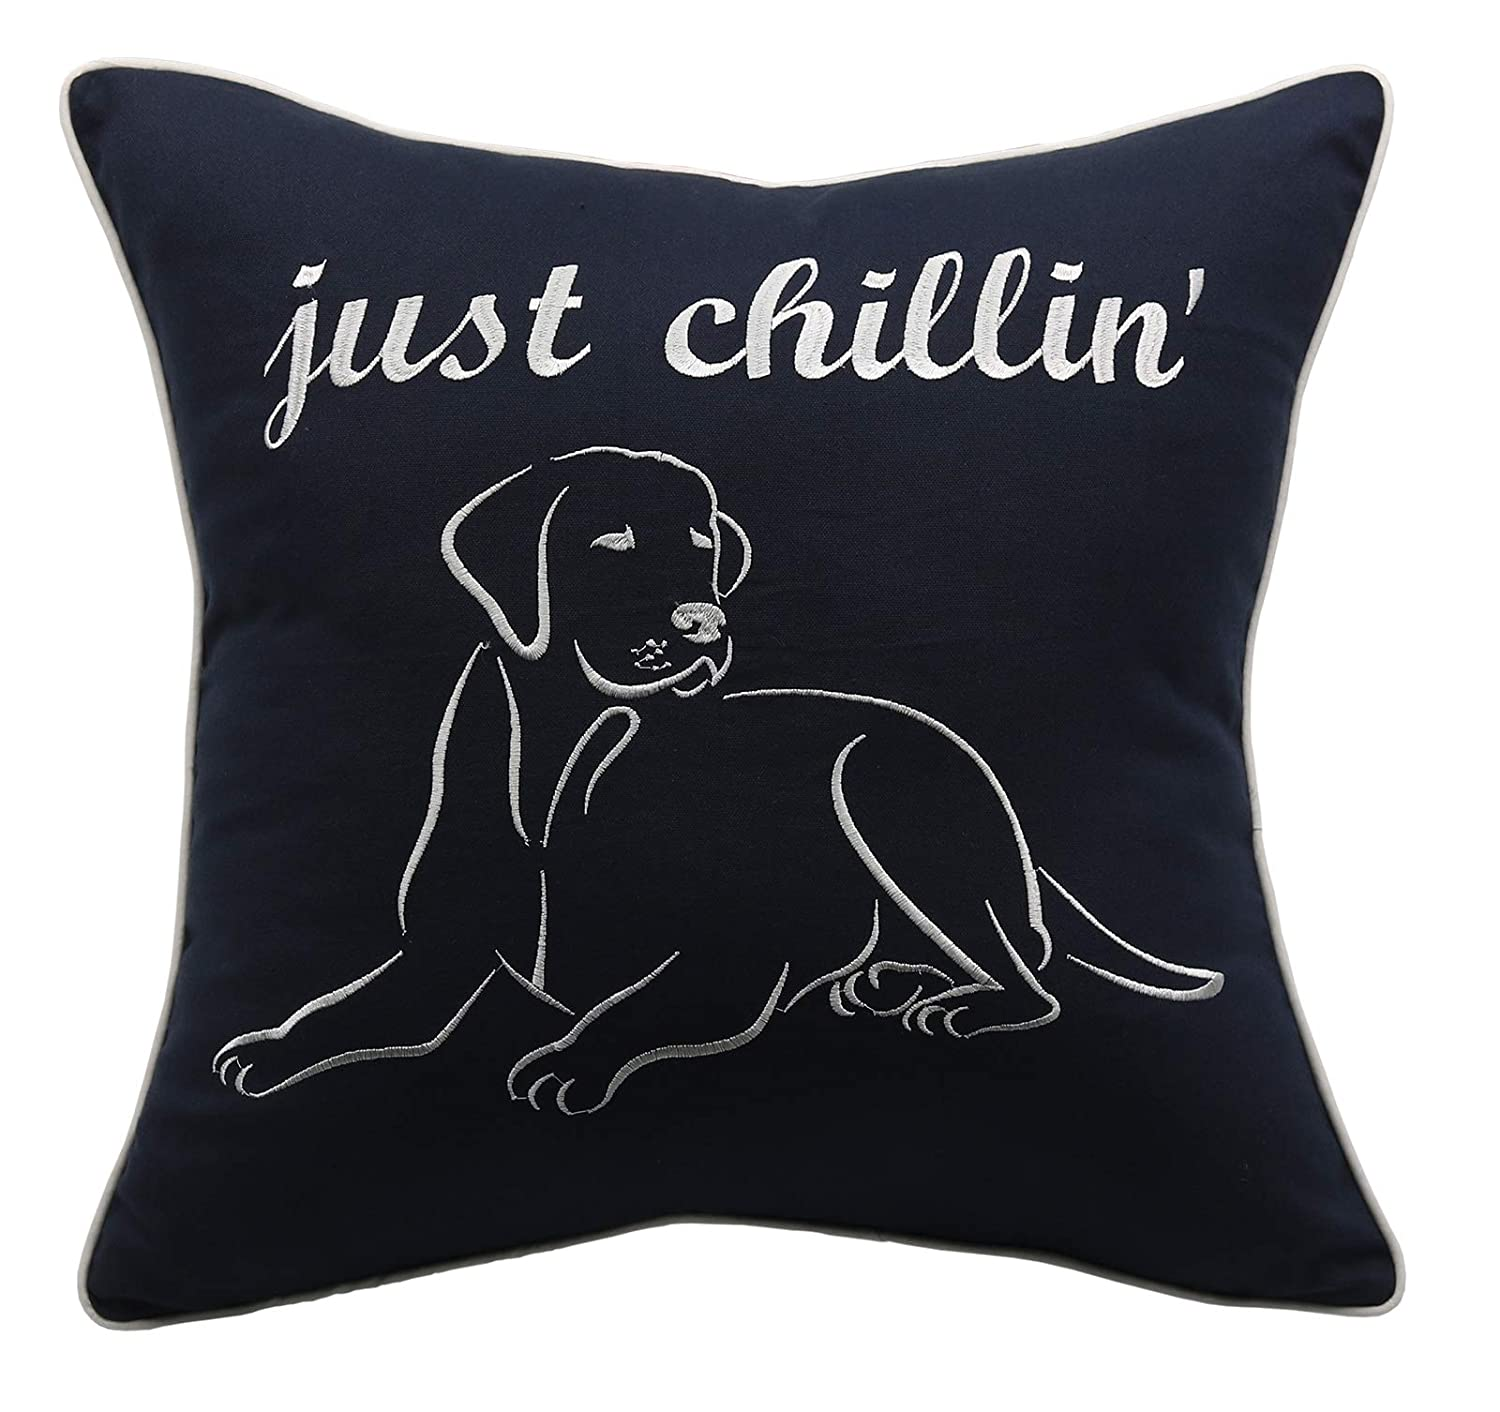 Dog Lovers Gift,Housewarming Gift,Couple Cushion Cover Navy Home Decor YugTex Pillowcases Embroidered Pet Lover Gift You me and The Dogs Throw Pillow Cover 18x18, You me and The Dogs